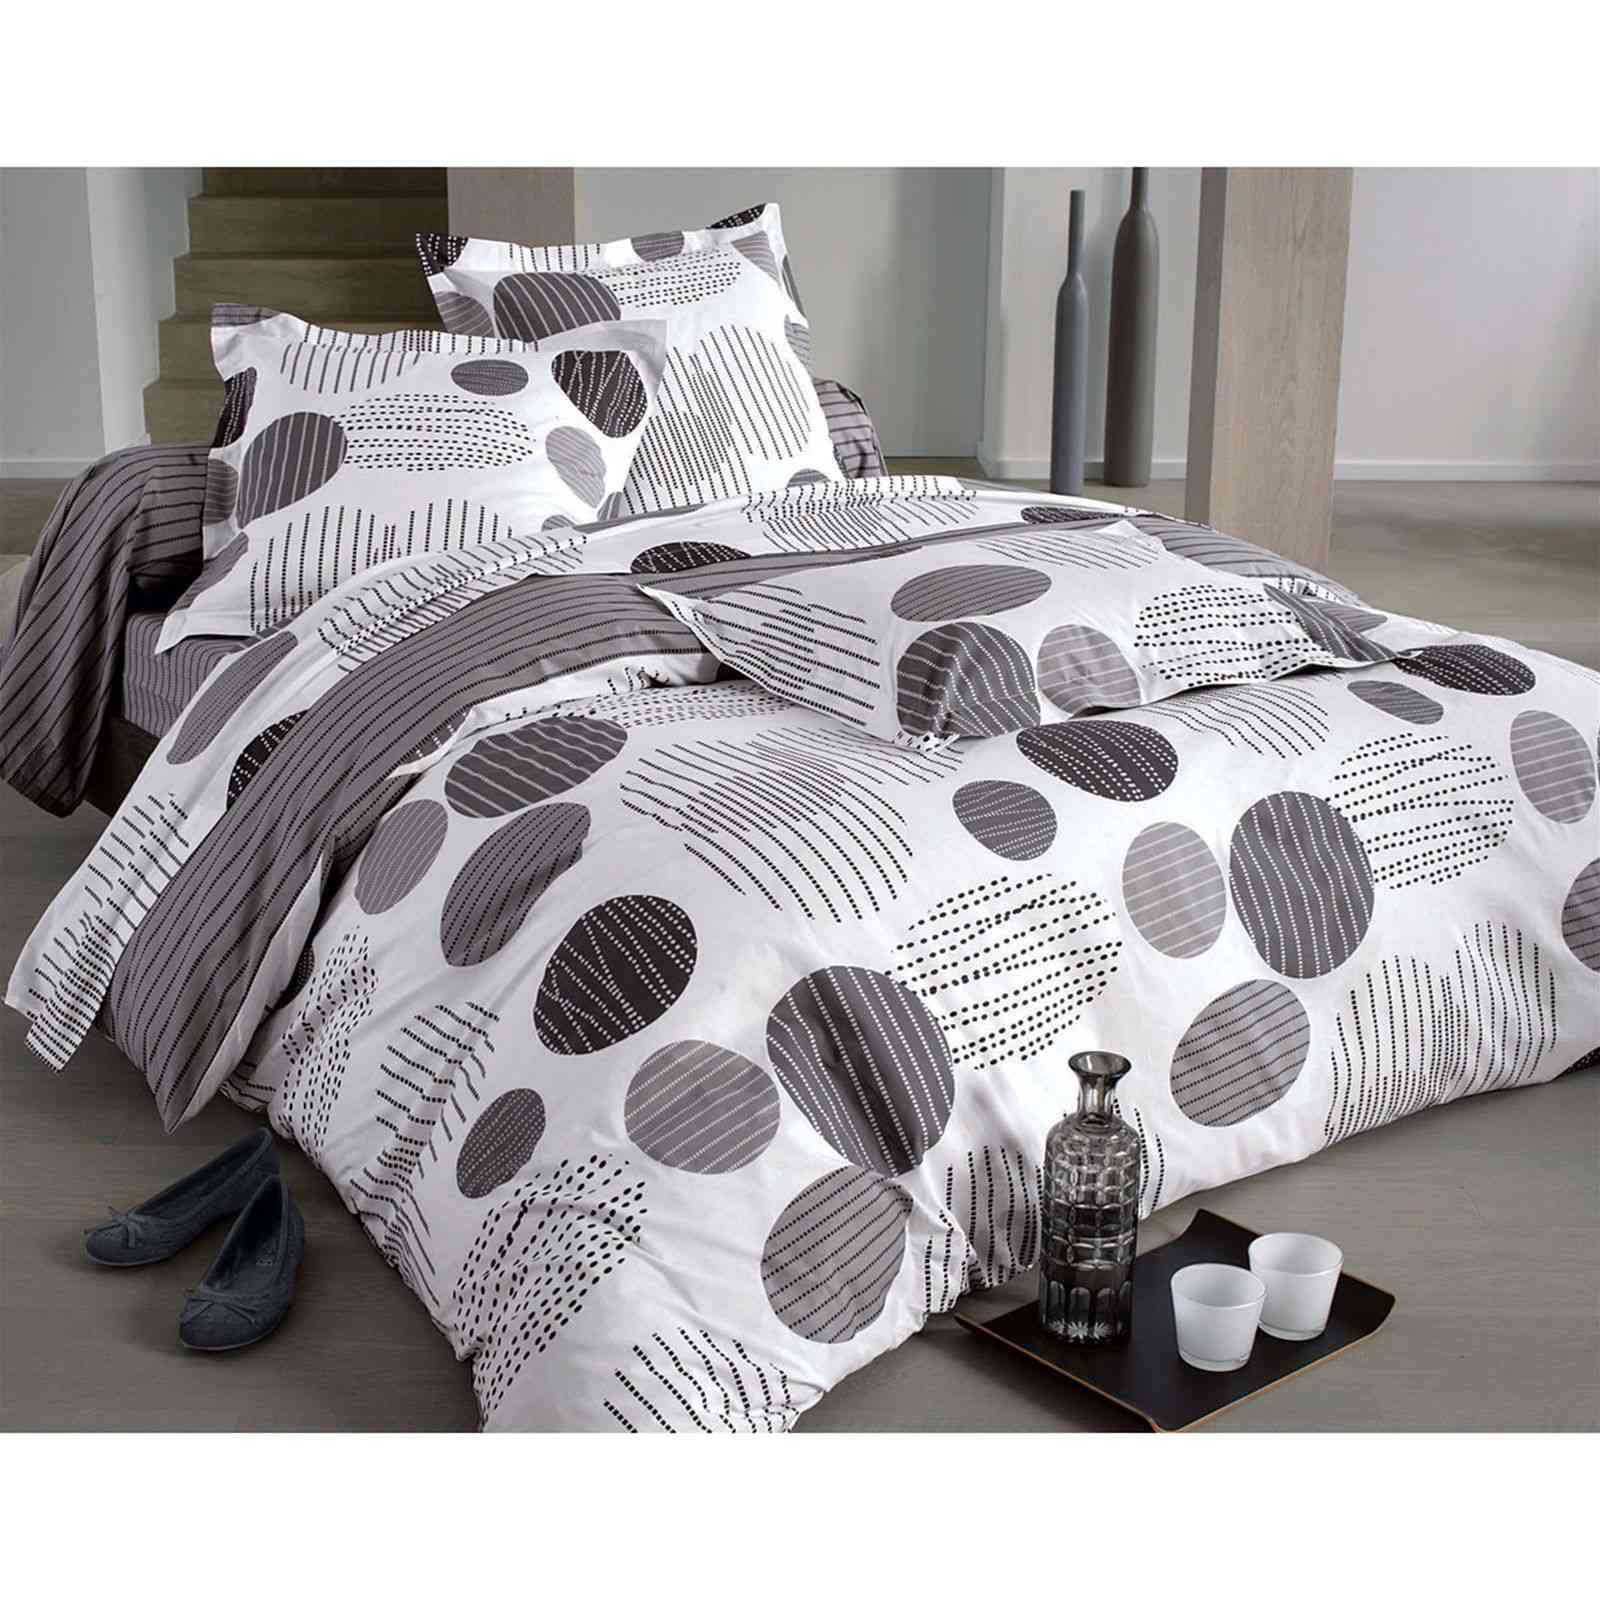 becquet housse de couette bulles et rayures gris. Black Bedroom Furniture Sets. Home Design Ideas